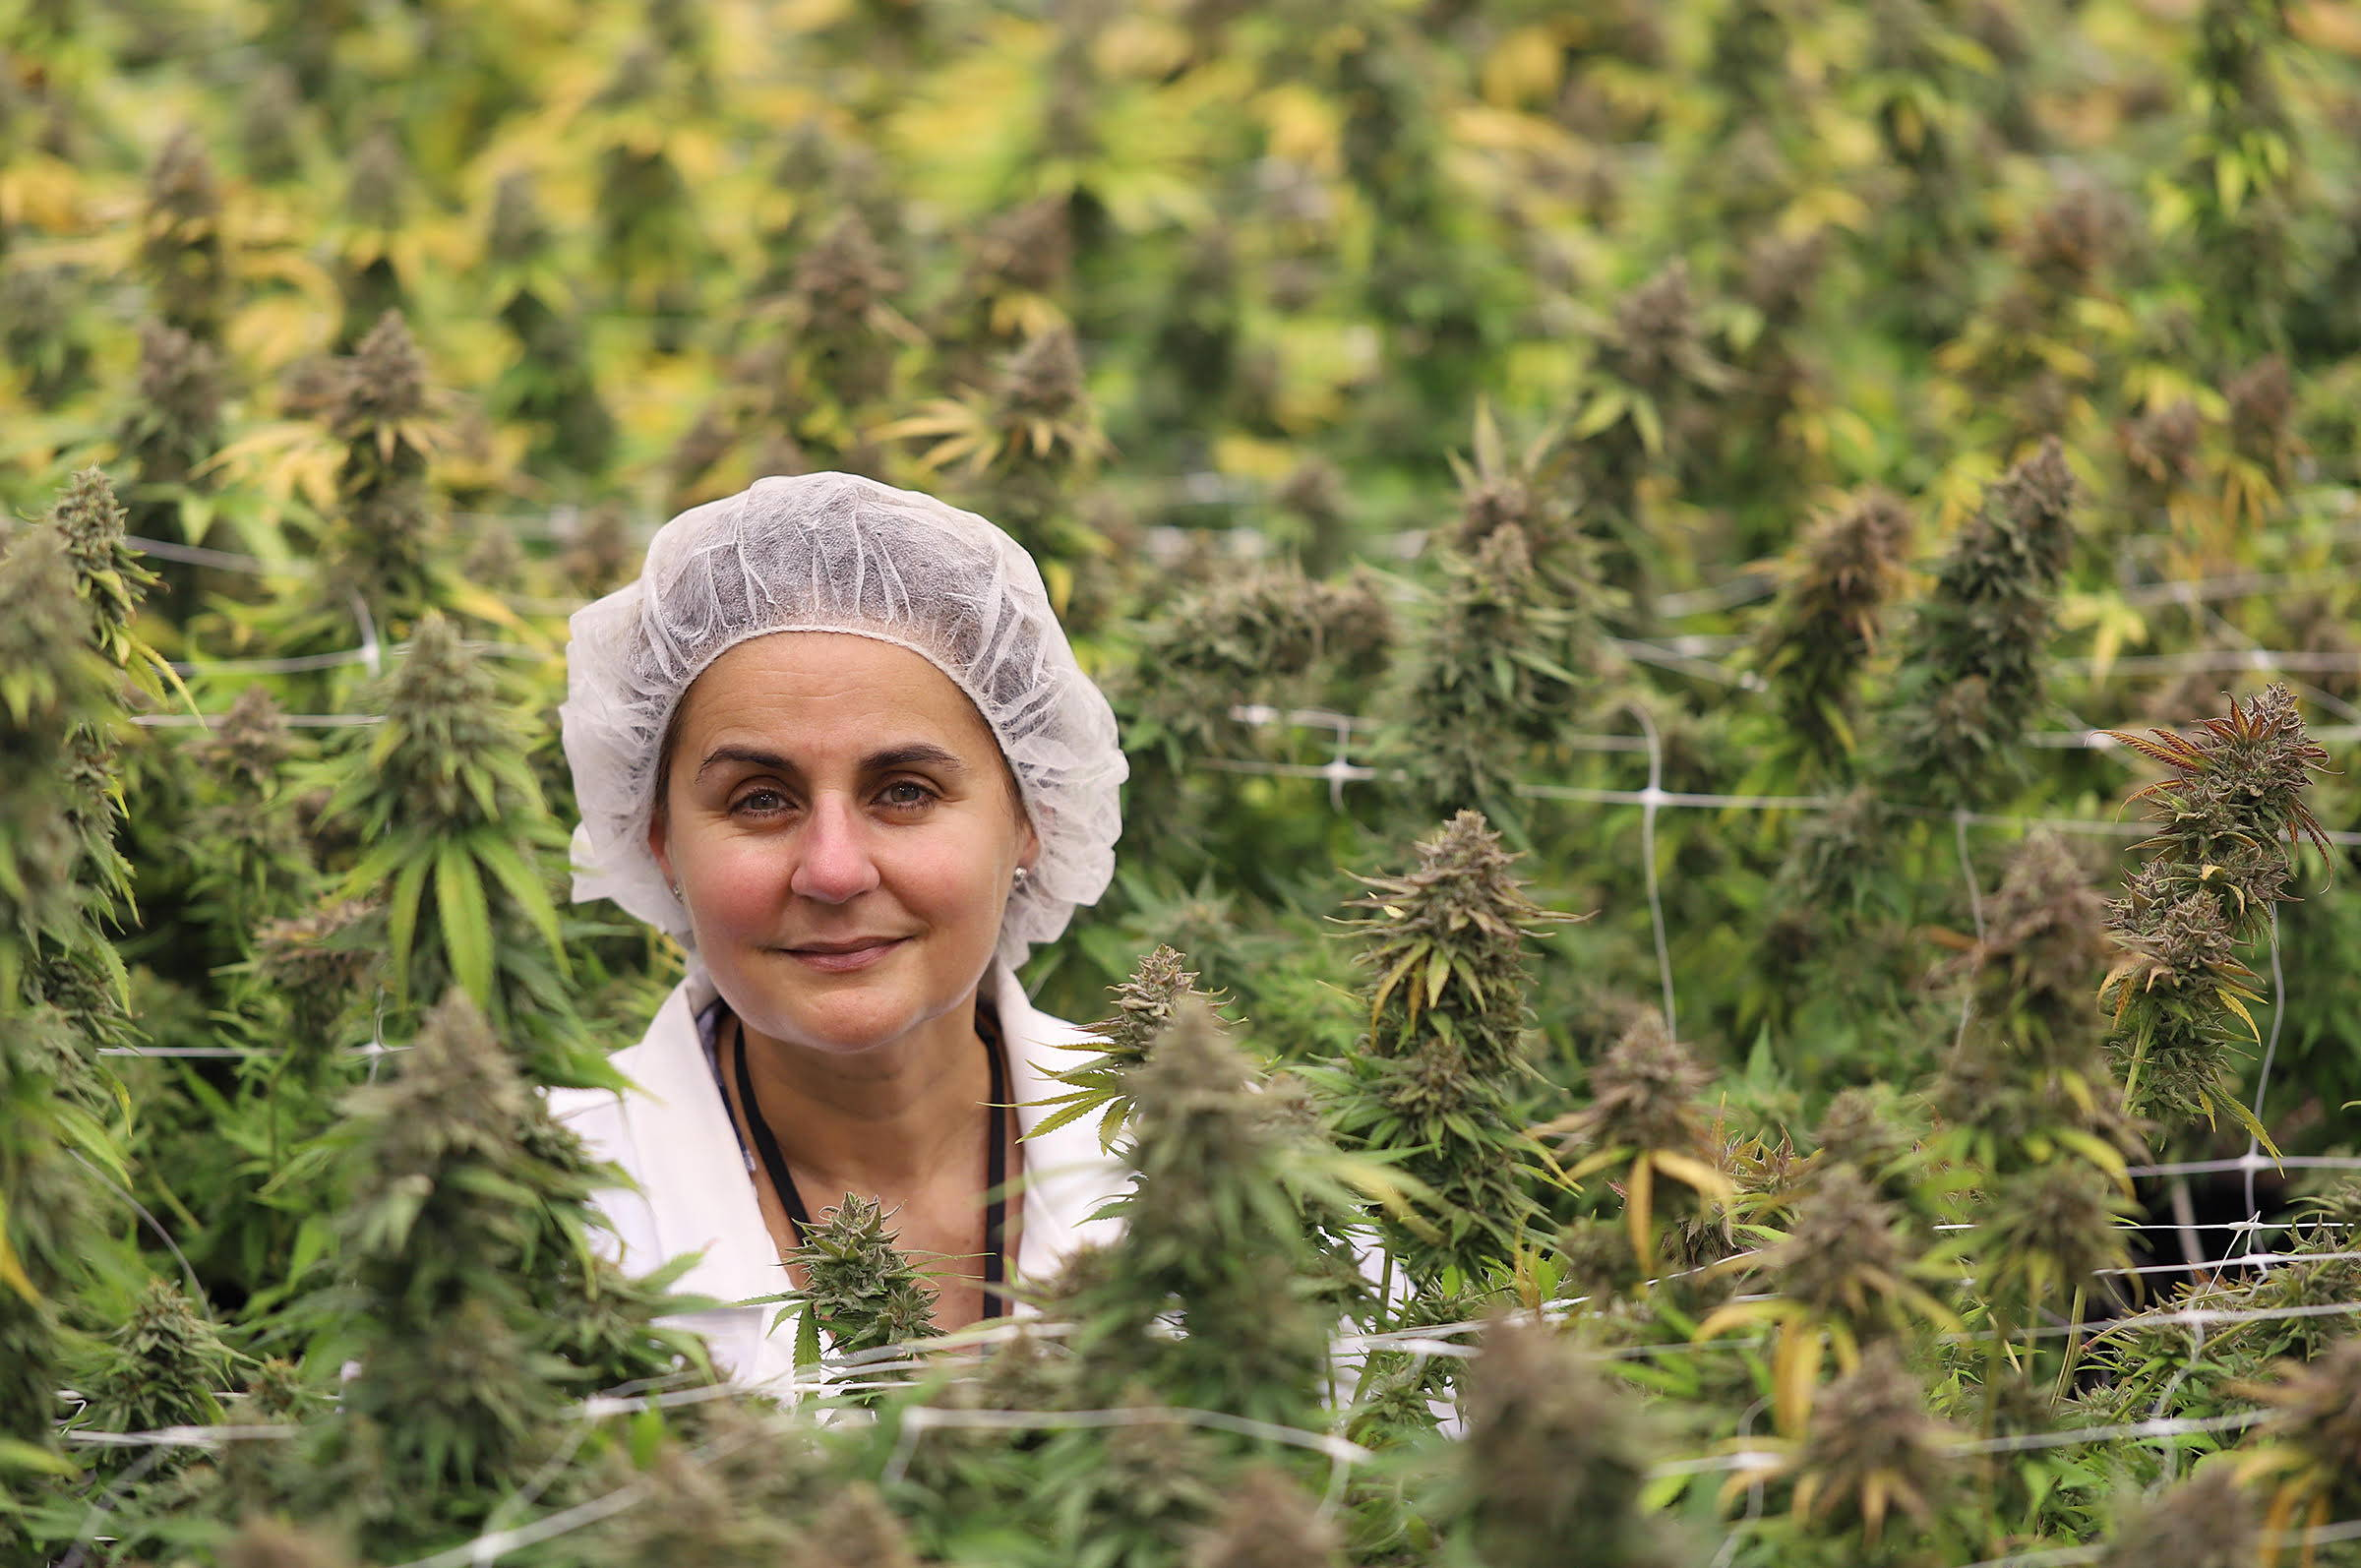 A photo of Jenn Ayotte, Maricann CEO and Master grower, surrounded by cannabis plants.